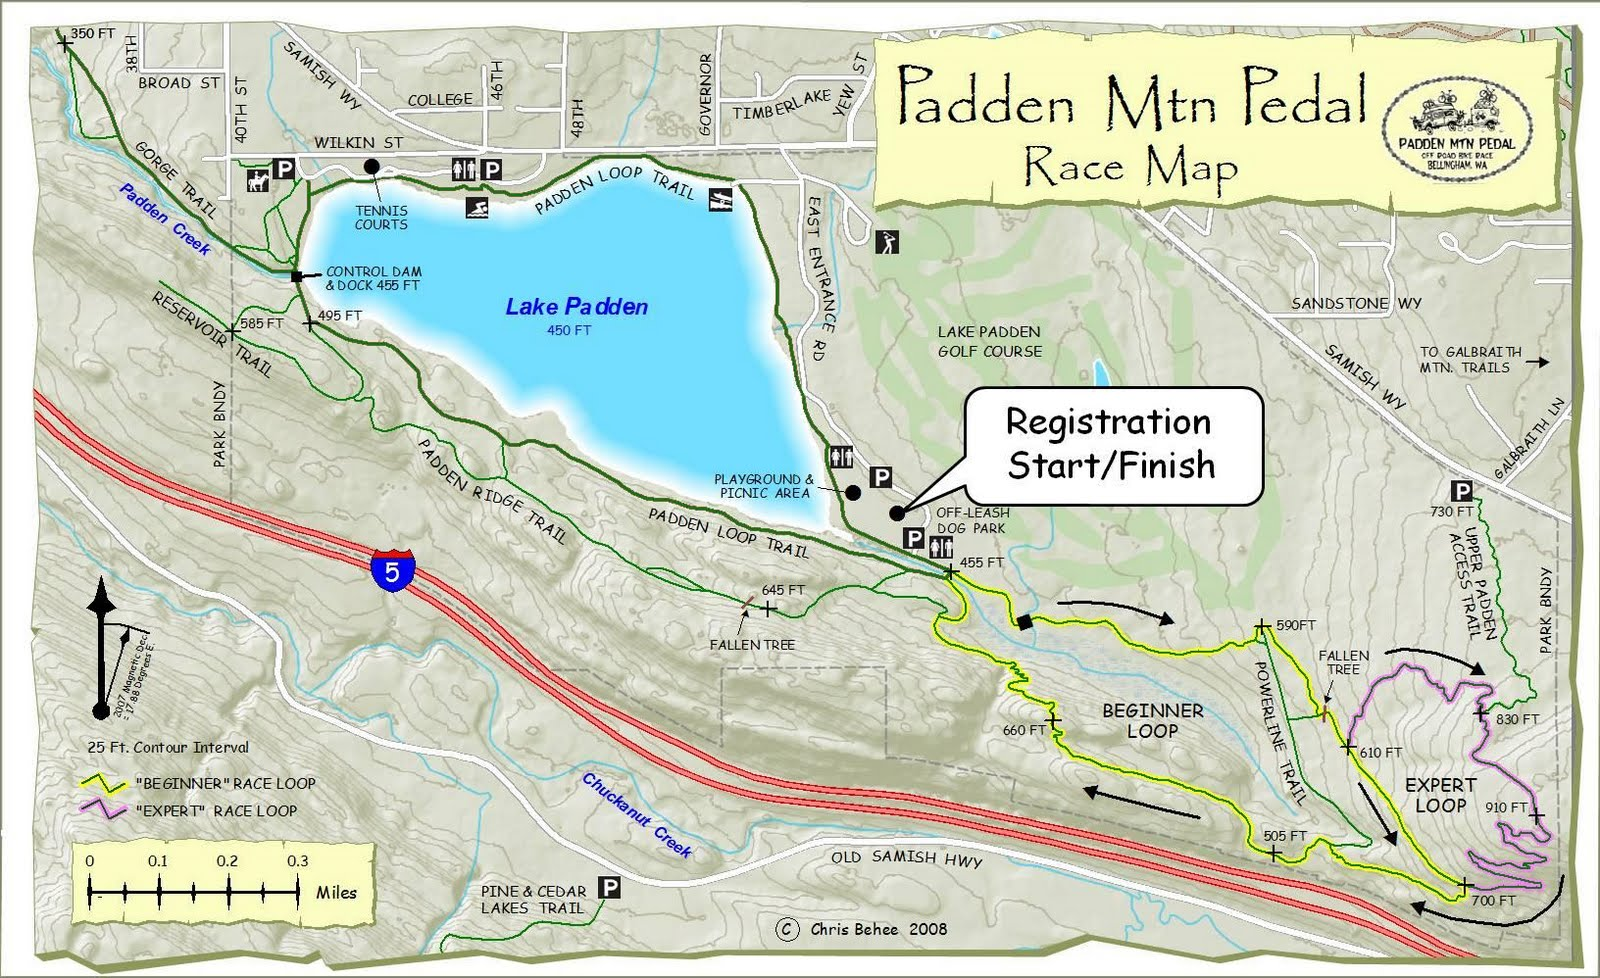 padden mtn pedal course map